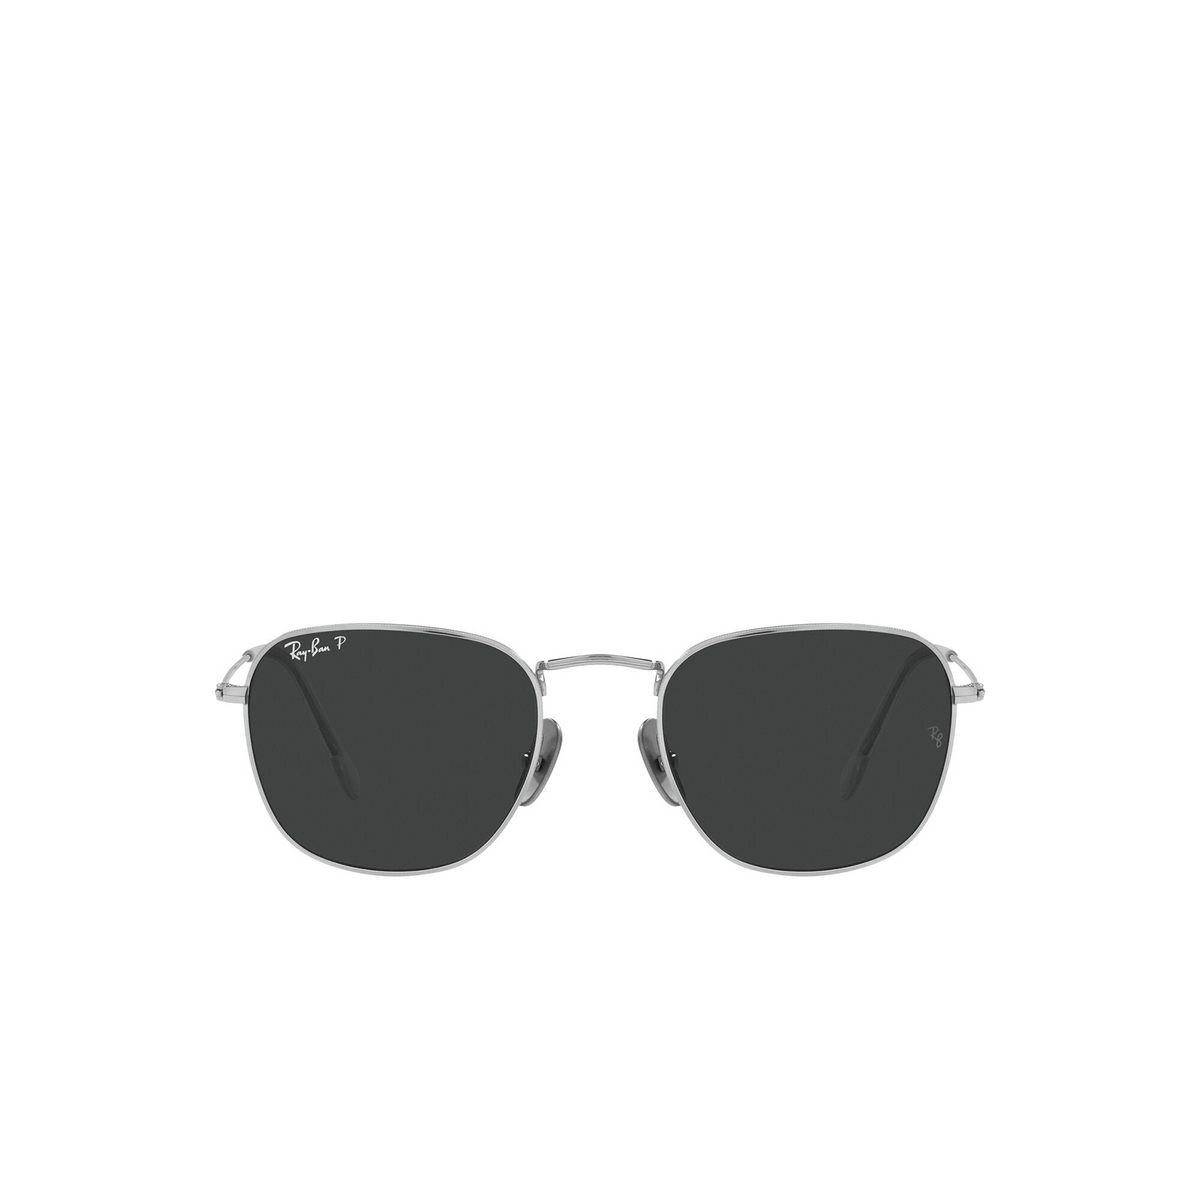 Ray-Ban® Square Sunglasses: Frank RB8157 color Silver 920948 - front view.